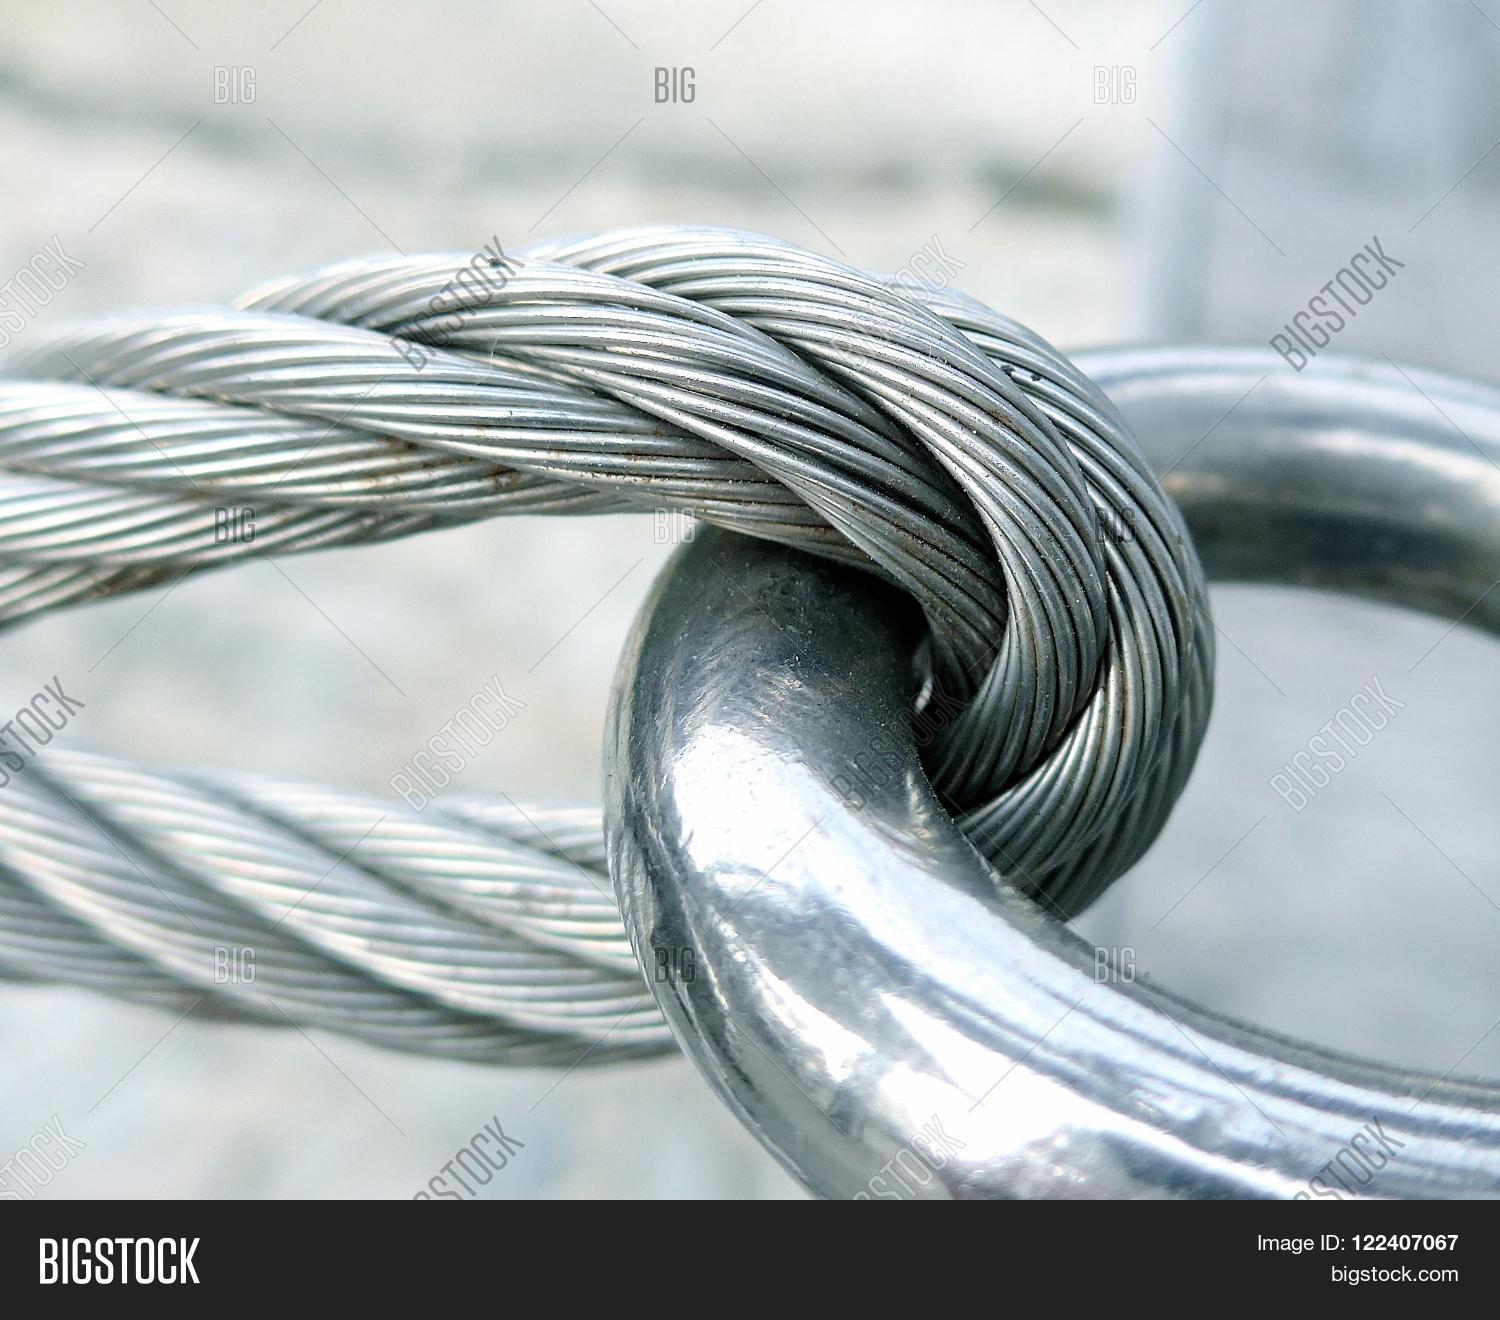 Close View Wire Rope Image & Photo (Free Trial) | Bigstock